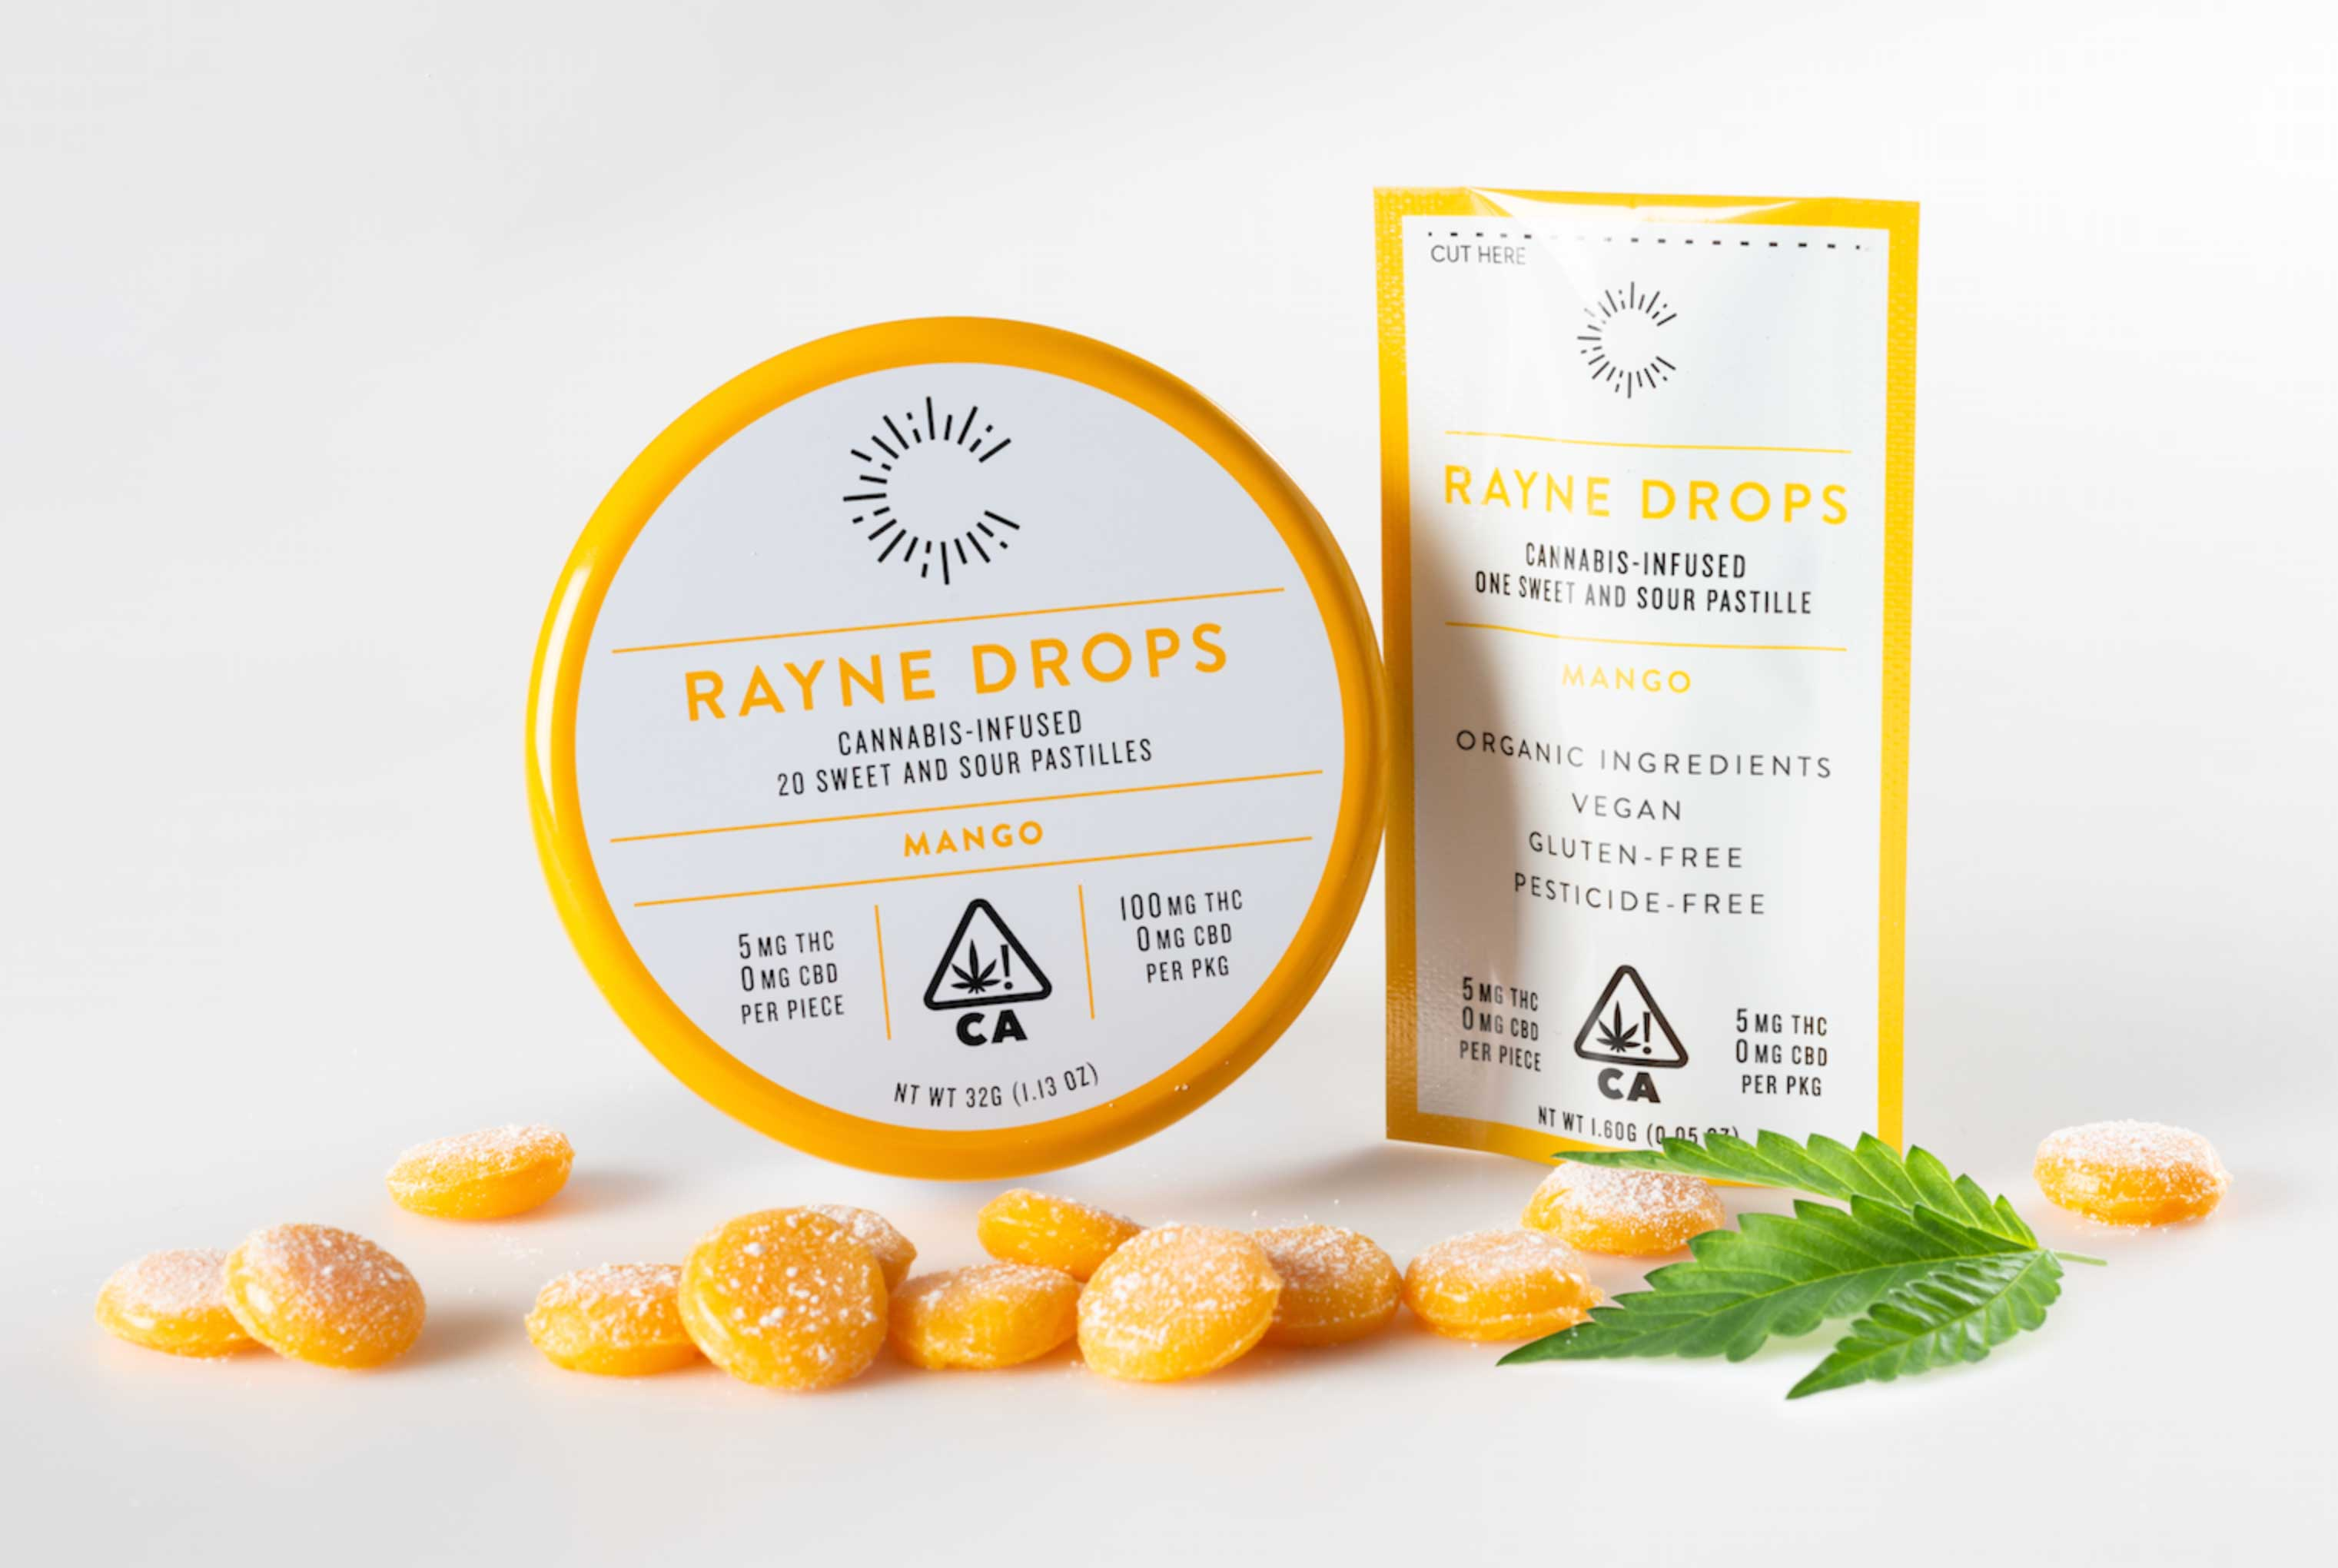 mike wepplo cannabis photography Rayne Drops Mango flavor